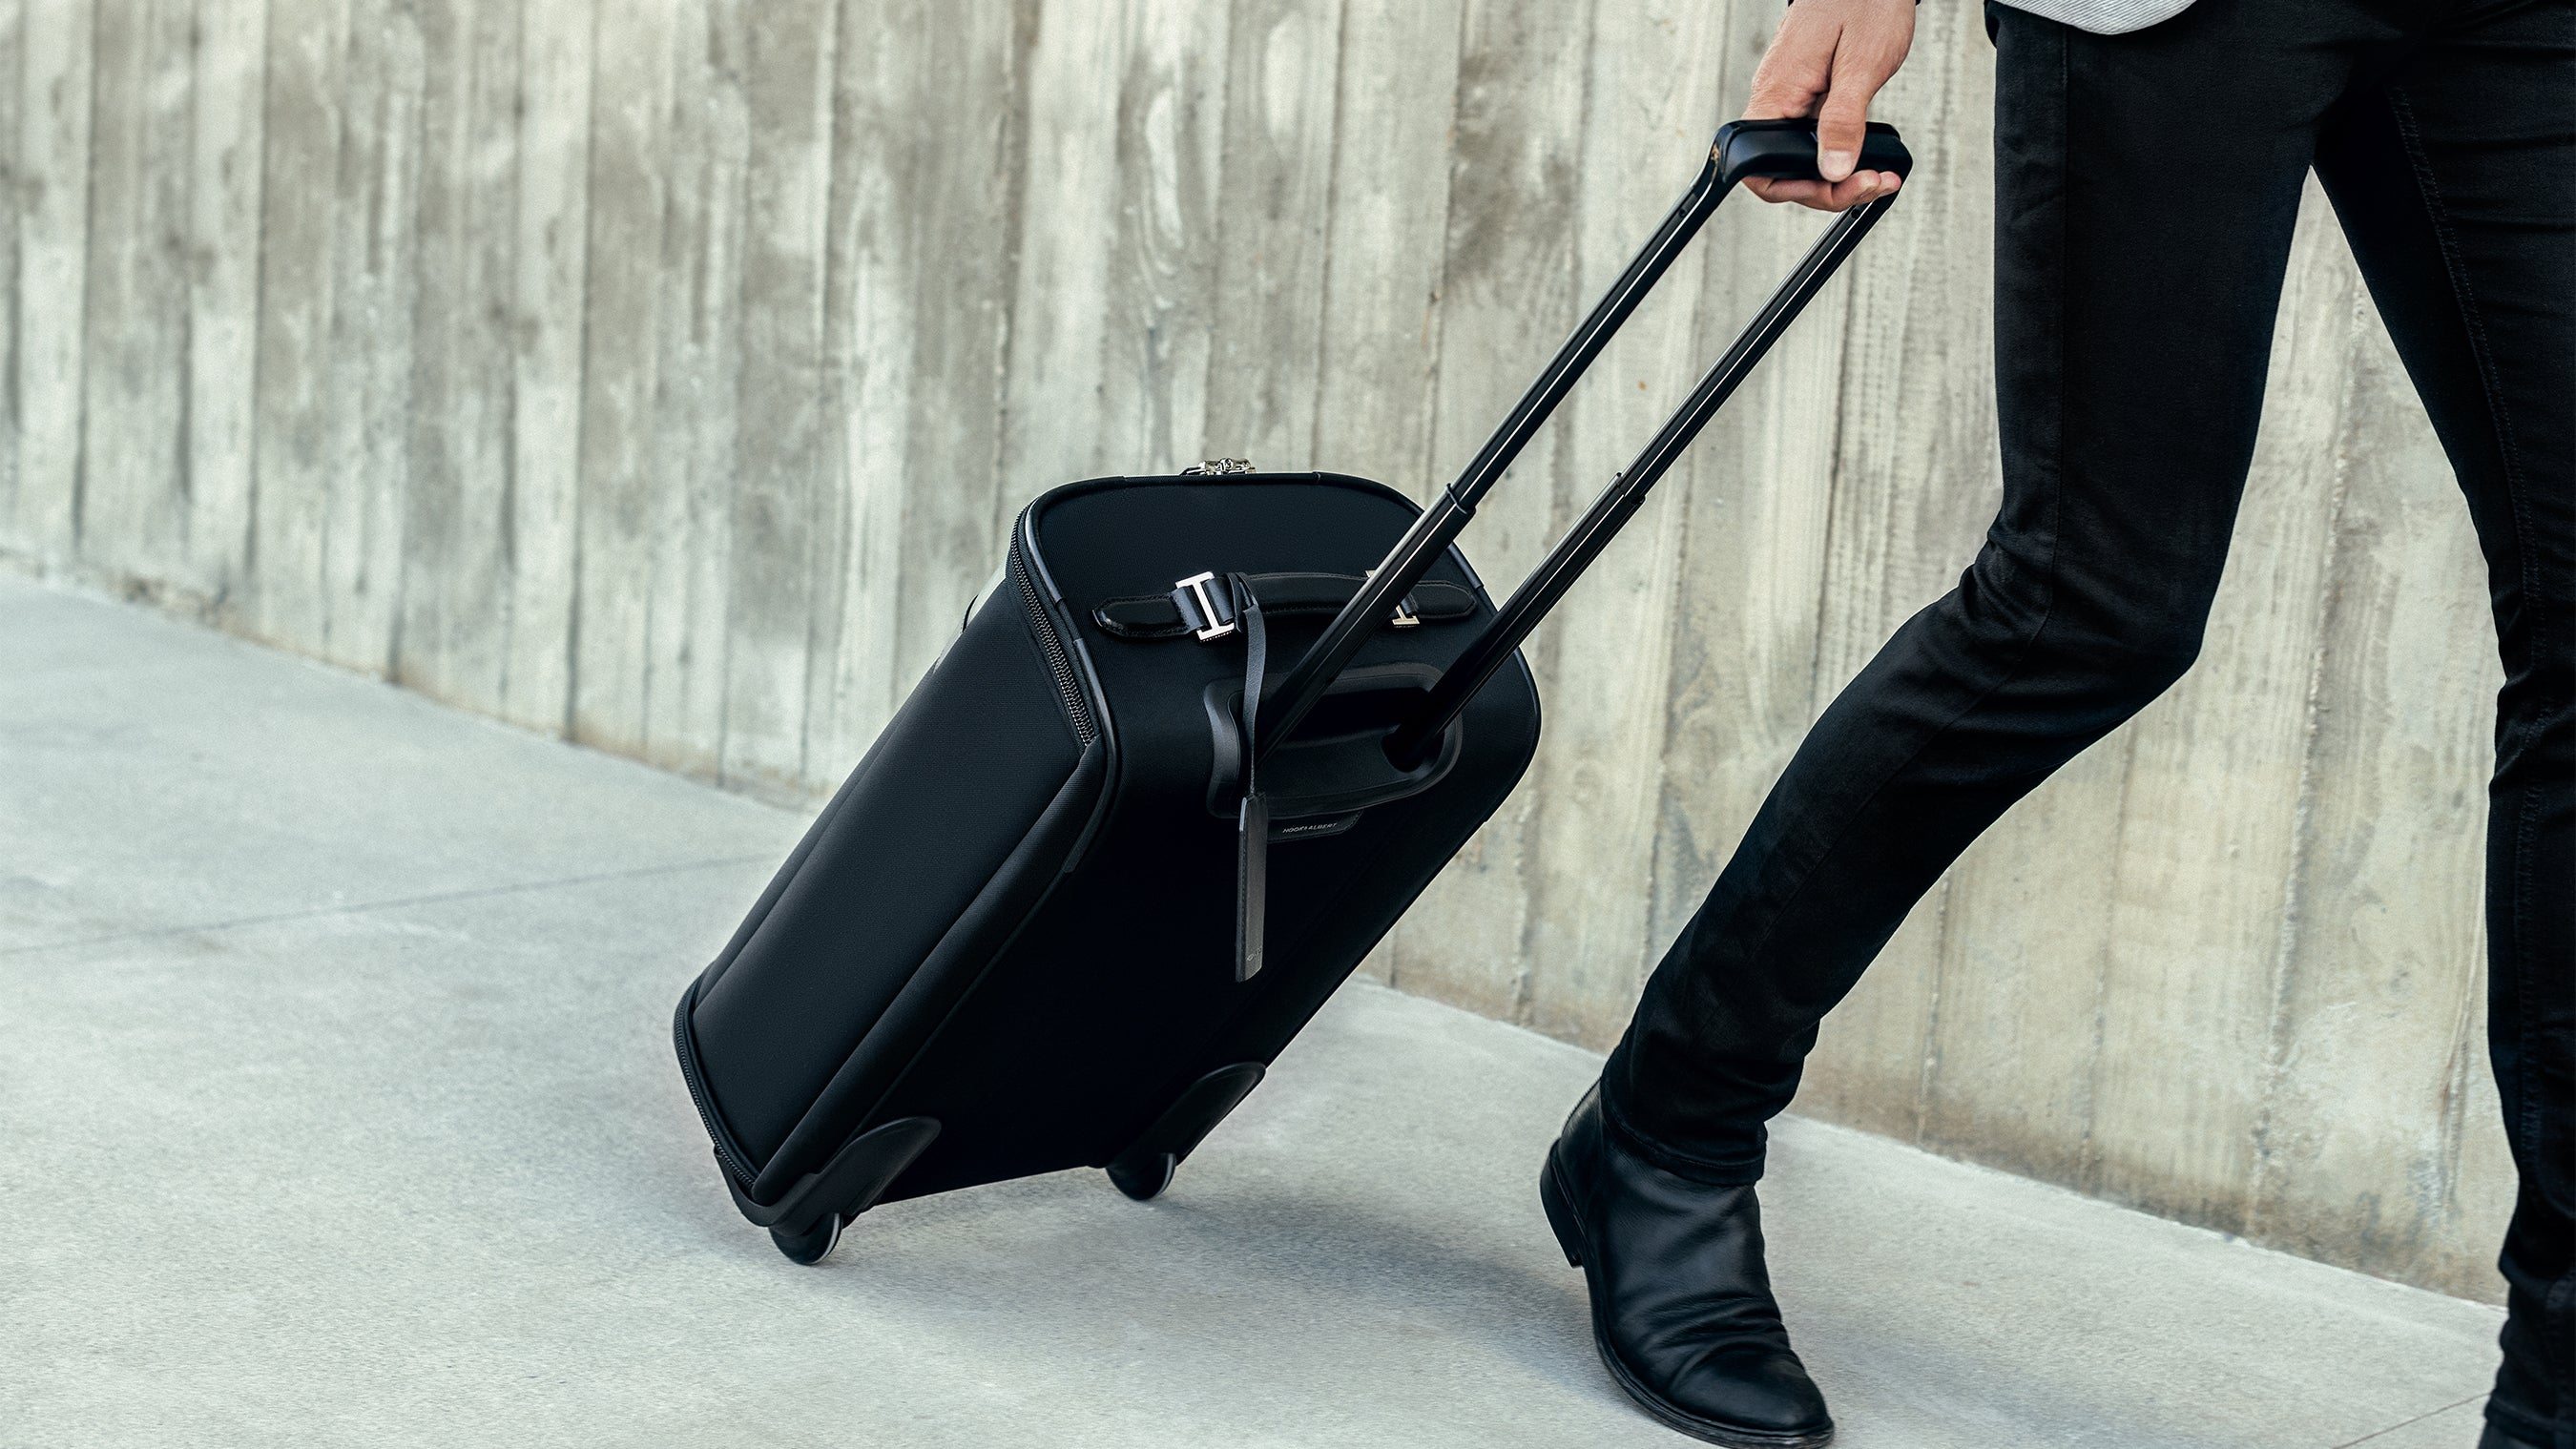 THE CARRY-ON OF THE FUTURE IS HERE